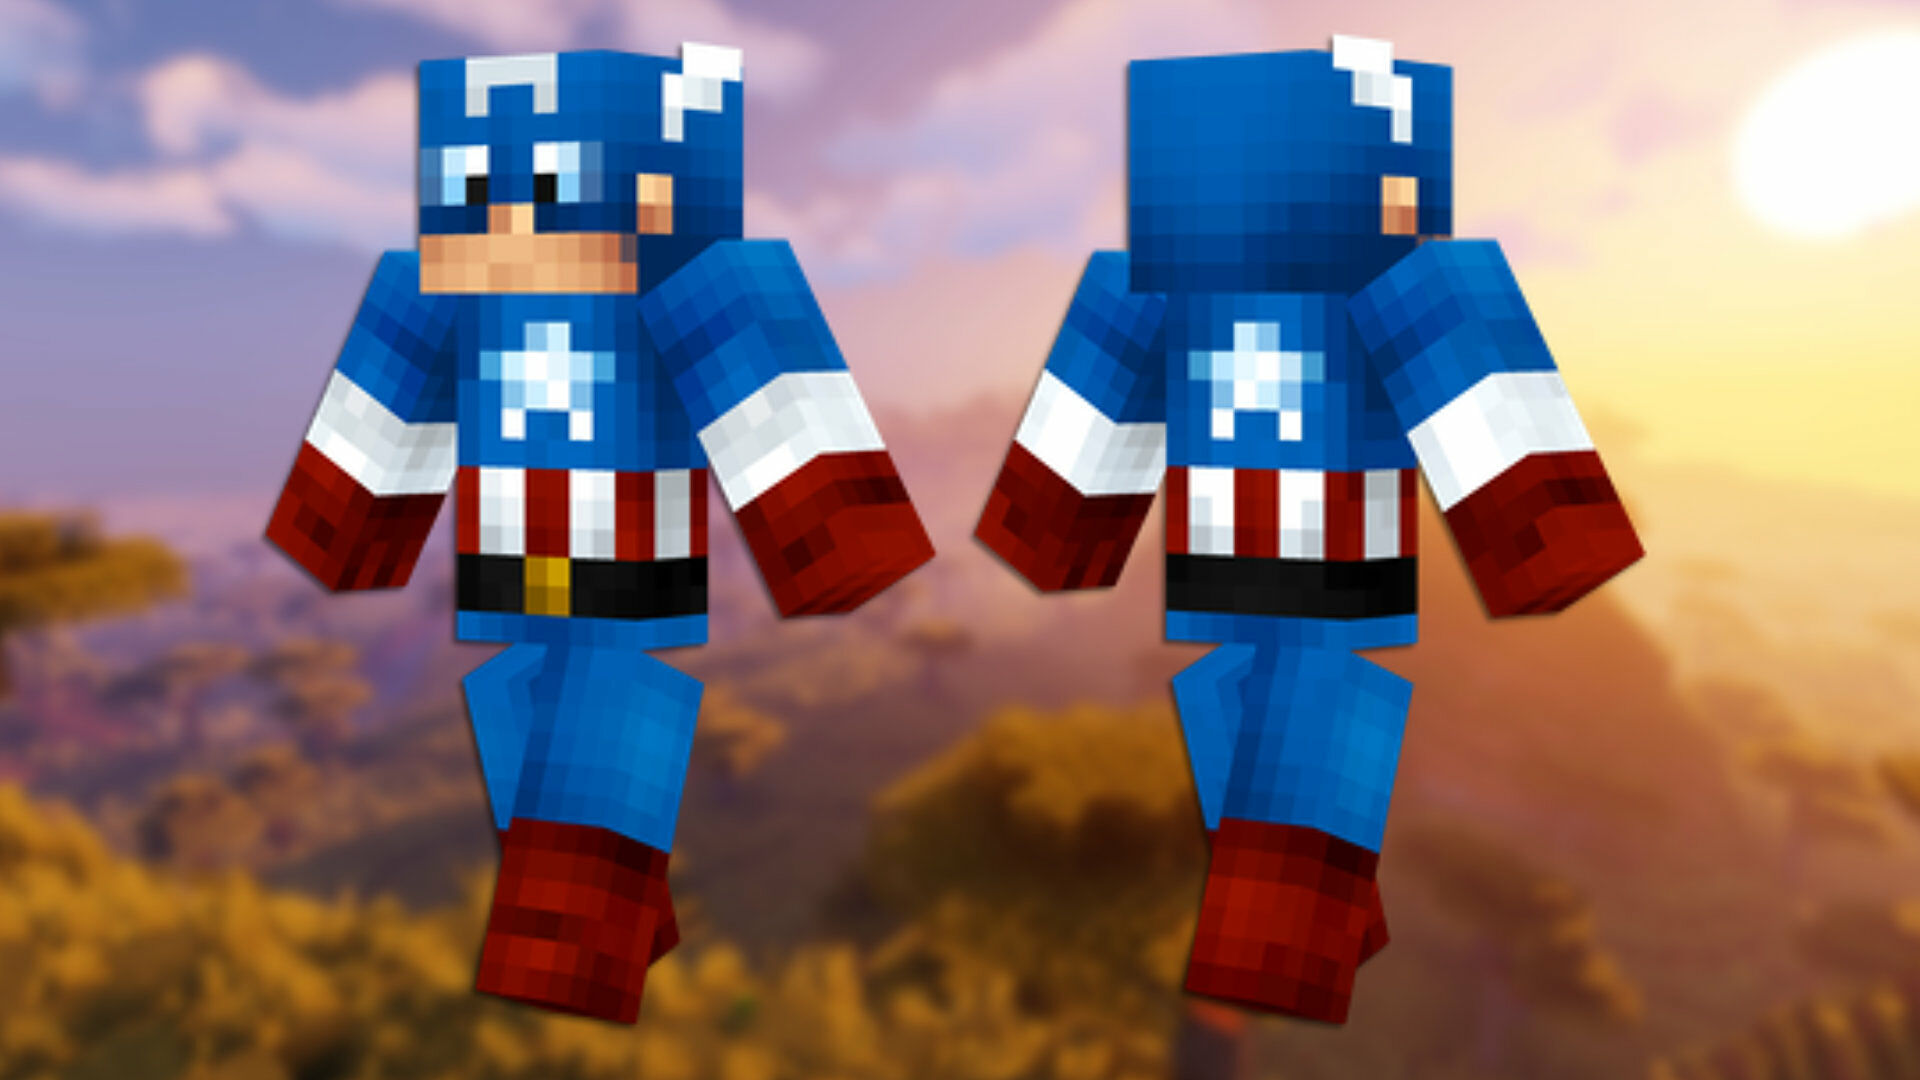 A front and back view of the Bane Minecraft skin.